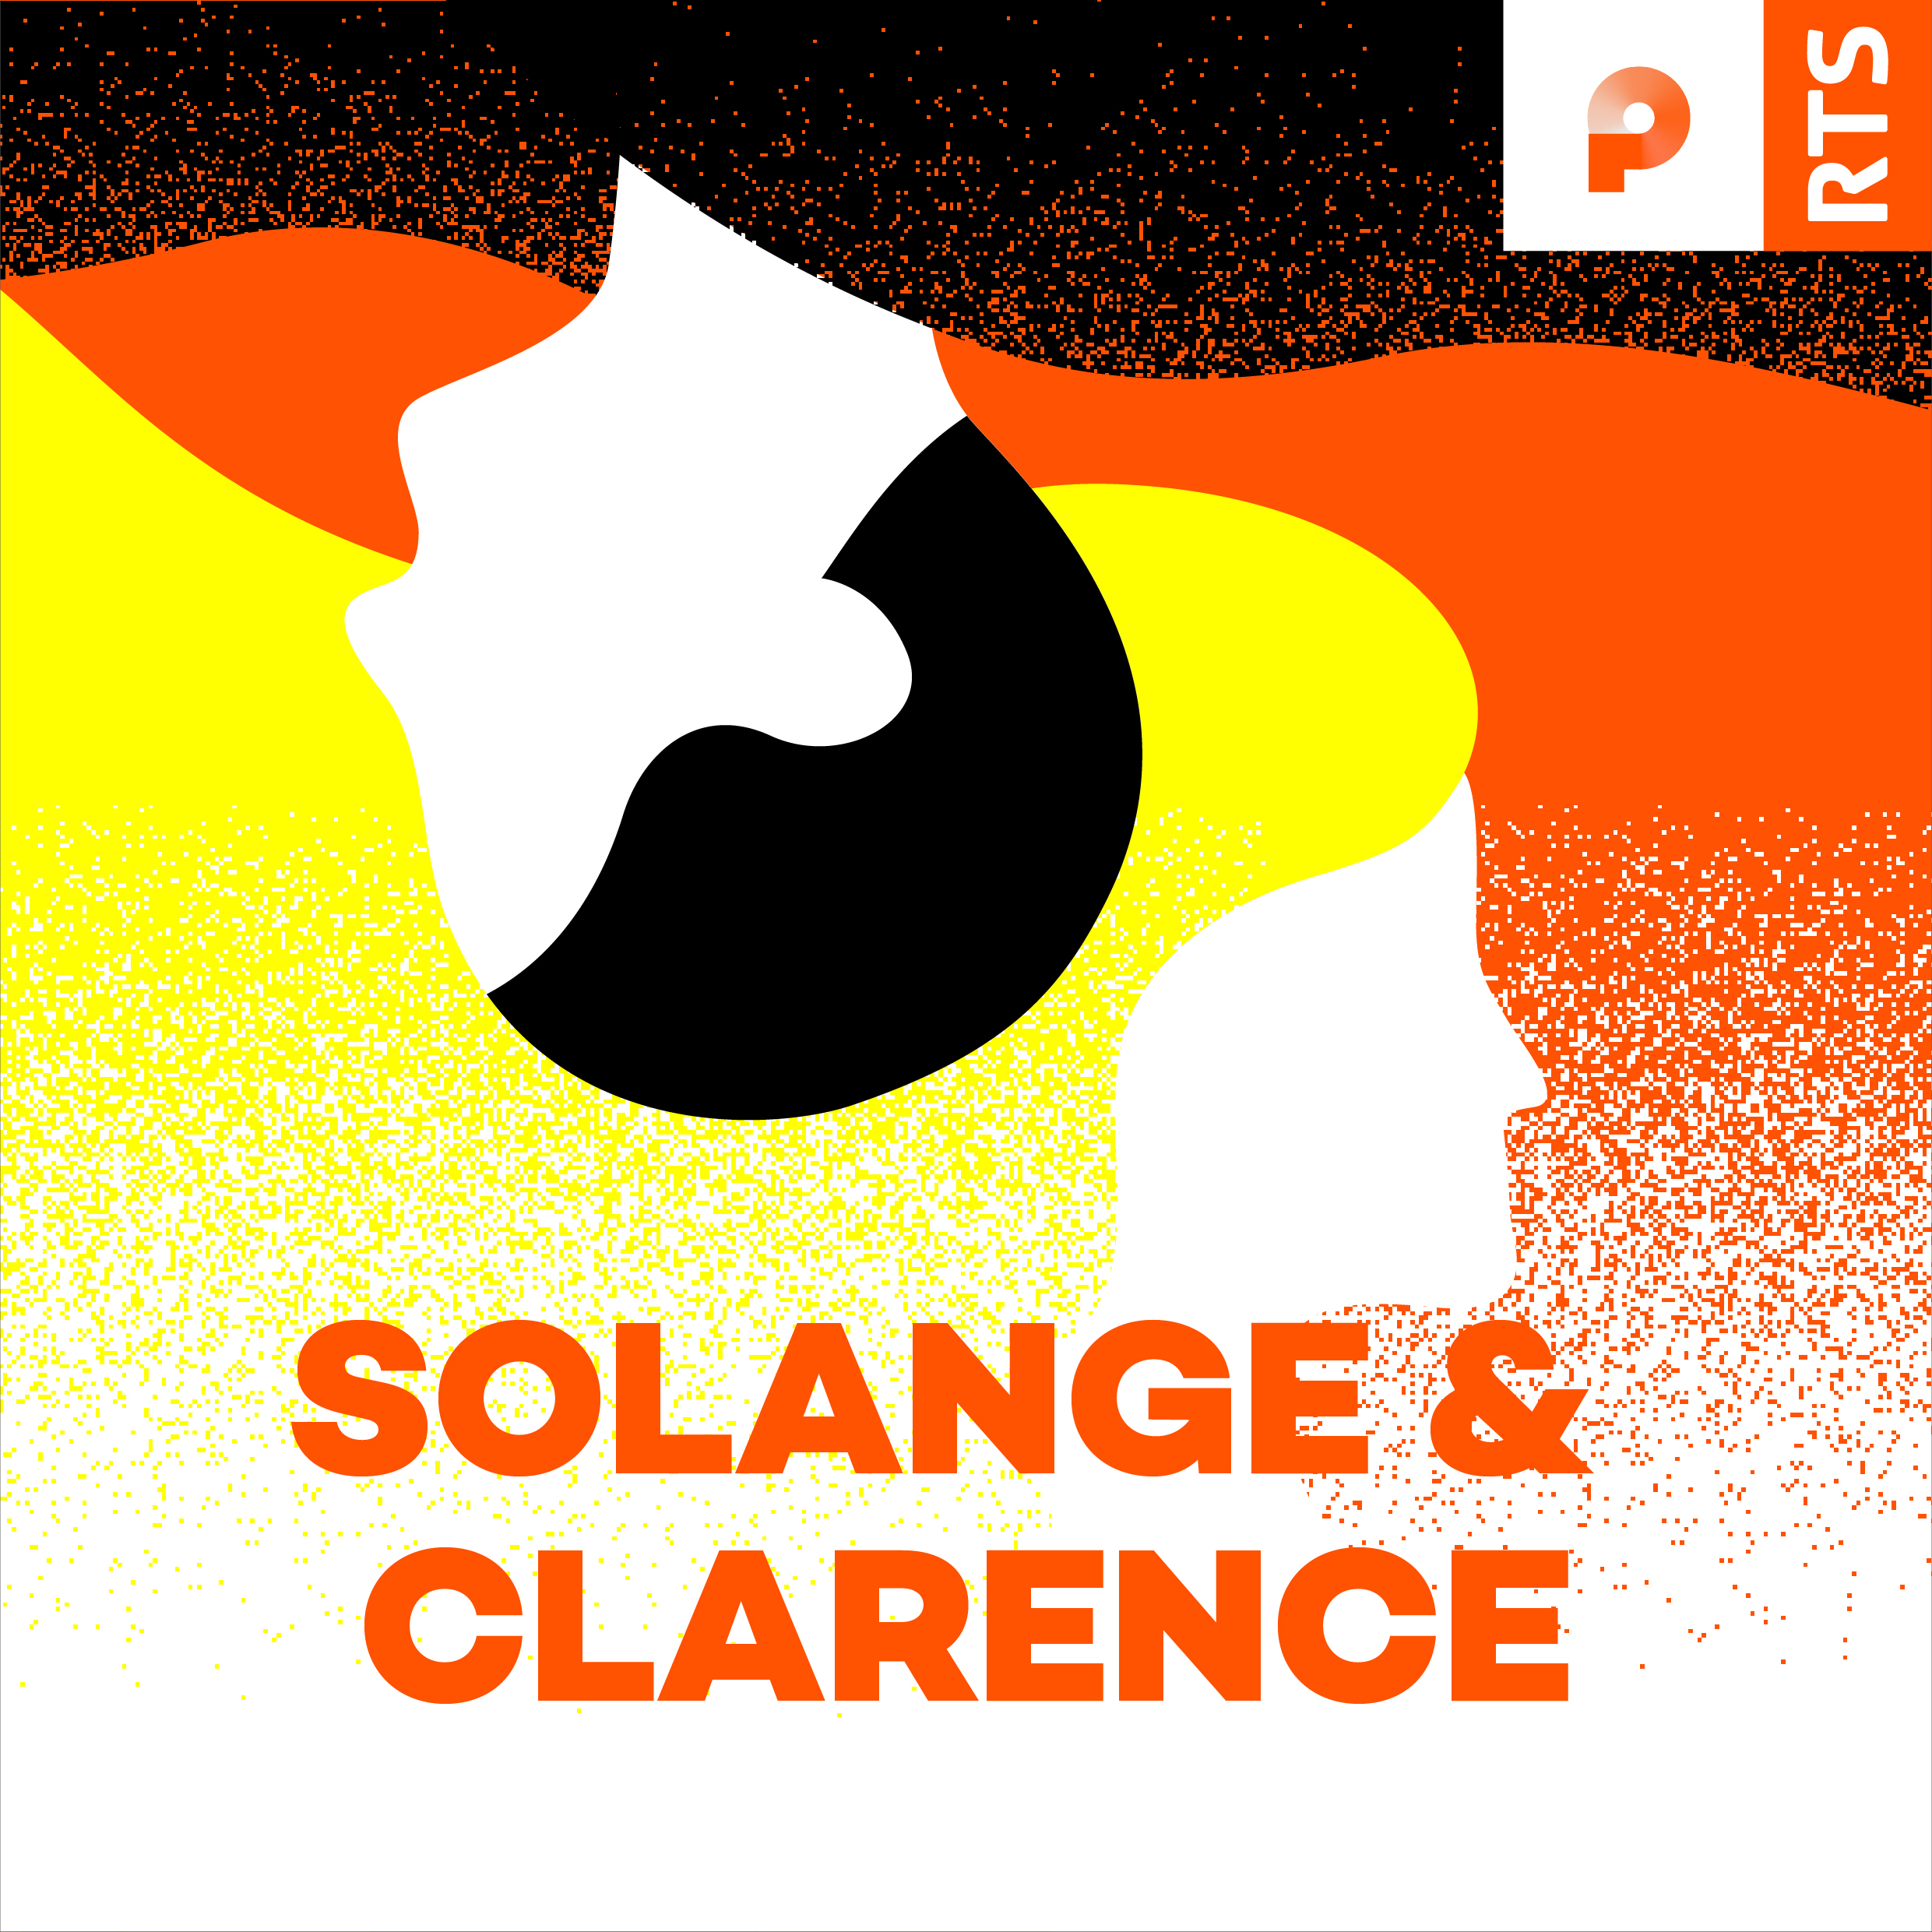 RTS Podcasts Solange & Clarence cover 1400x1400px. [RTS]